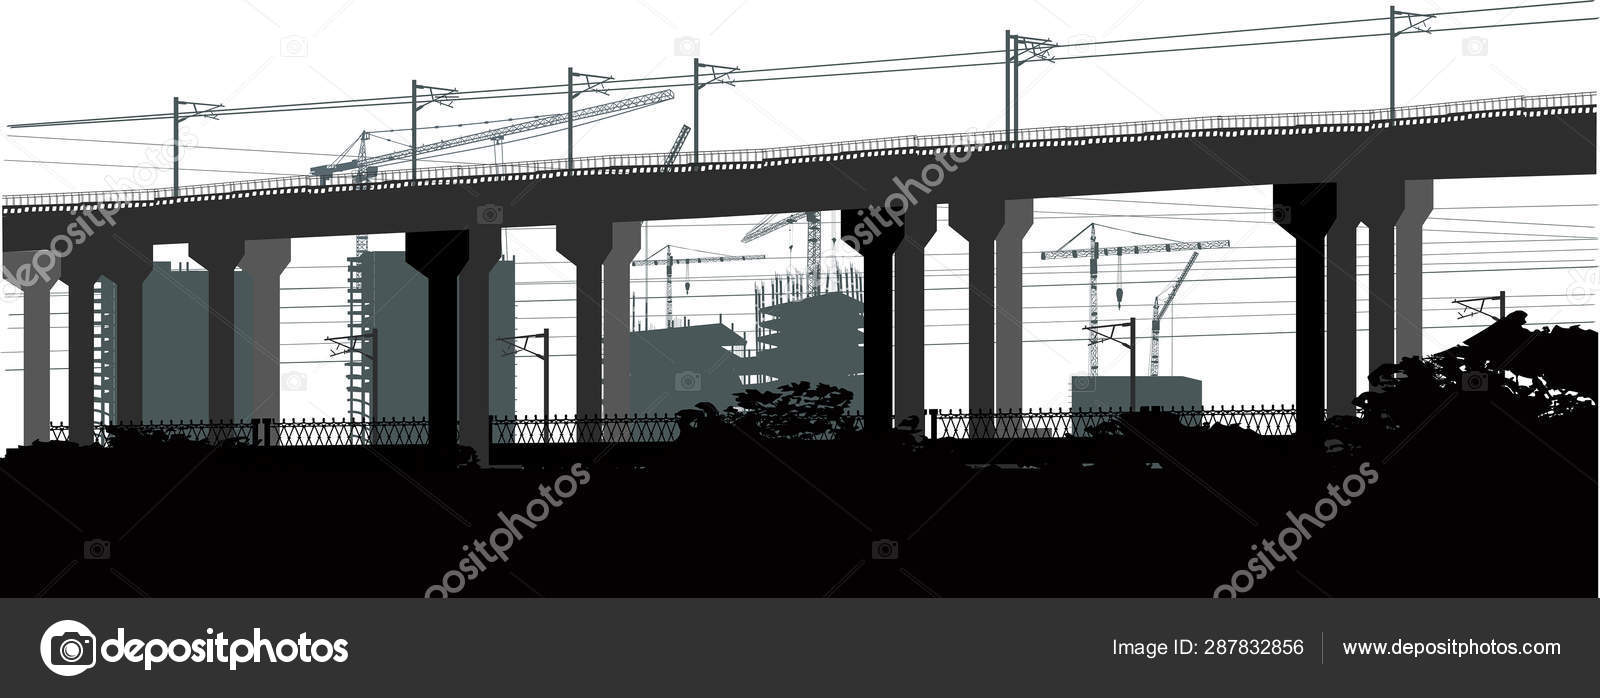 House Building And Modern Bridge On White Stock Vector C Dr Pas 287832856